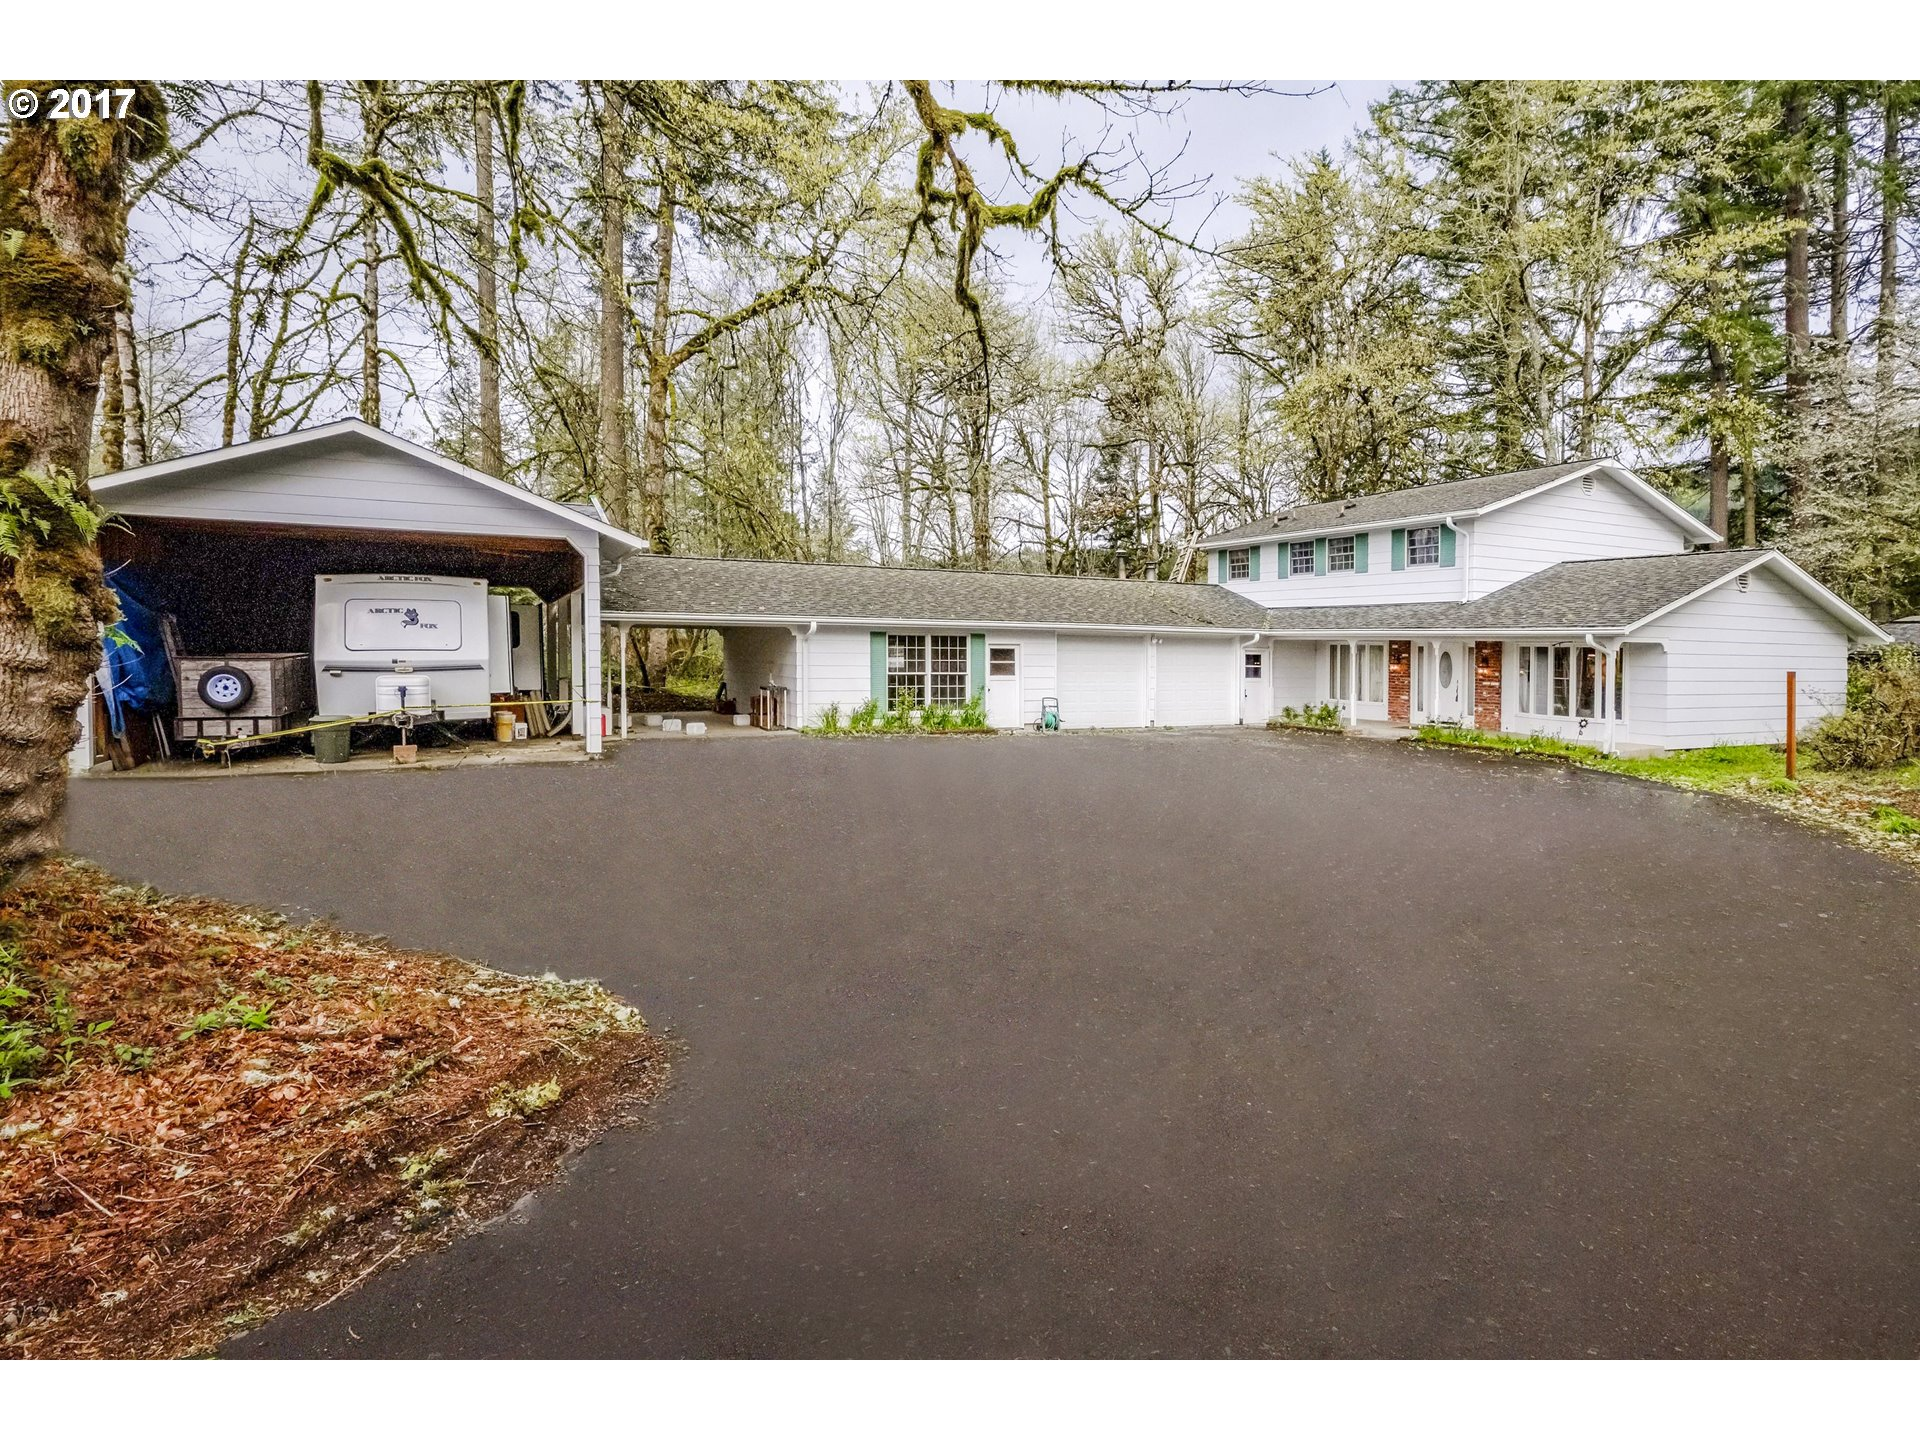 42955 GREEN RIVER DR, Sweet Home, OR 97386